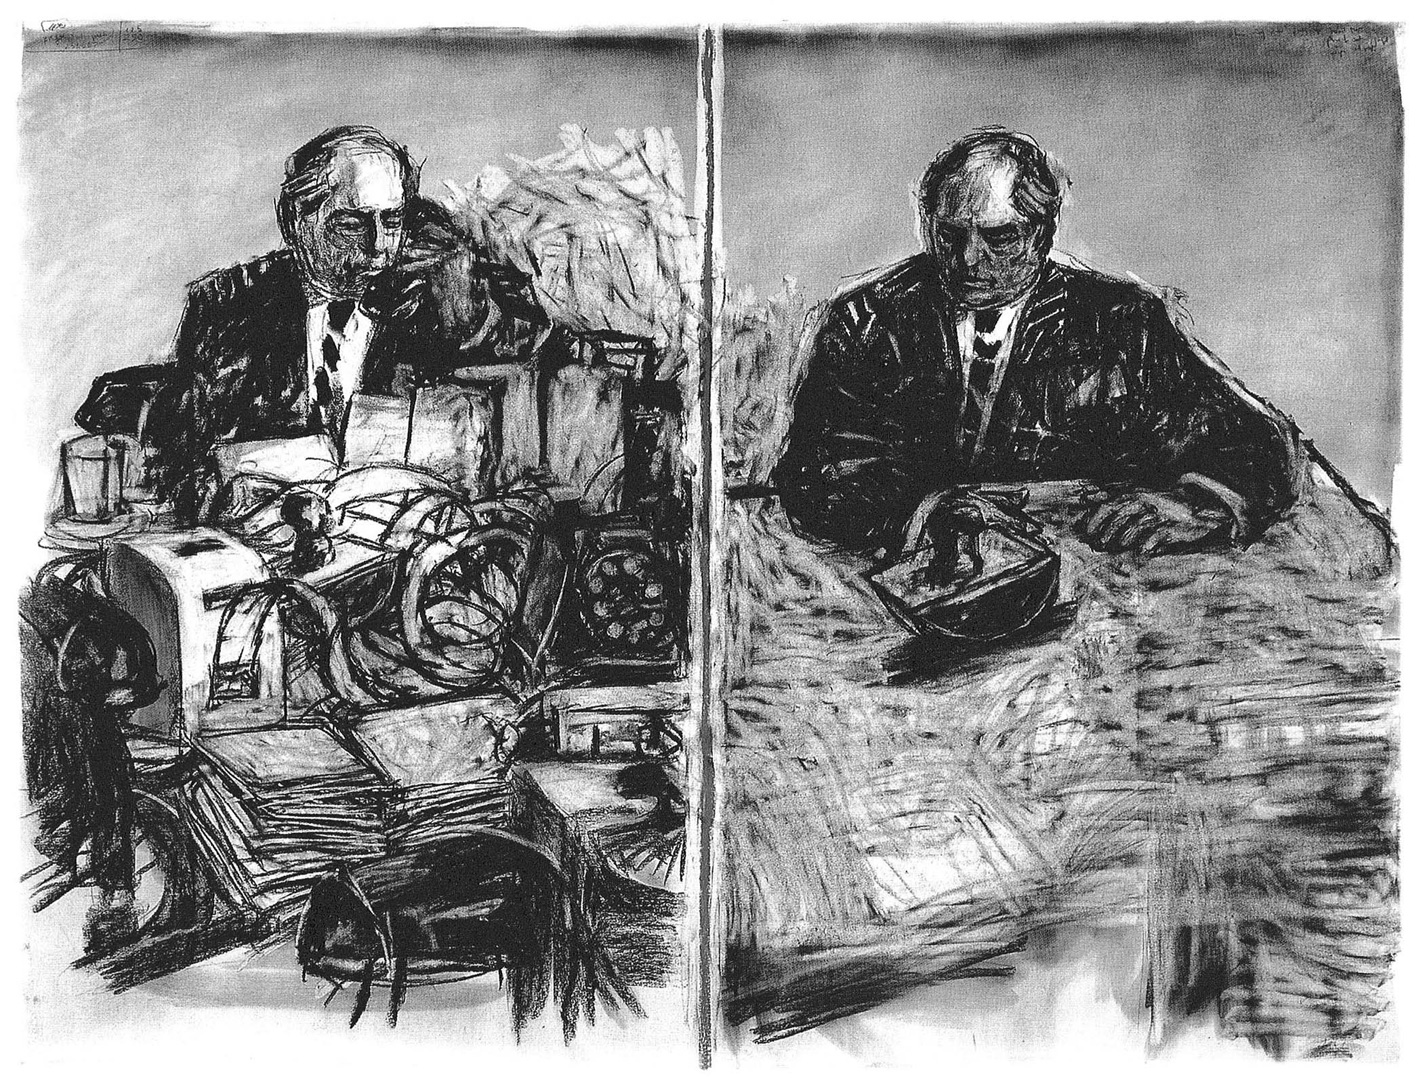 Still from William Kentridge's  Stereoscope  (1999)